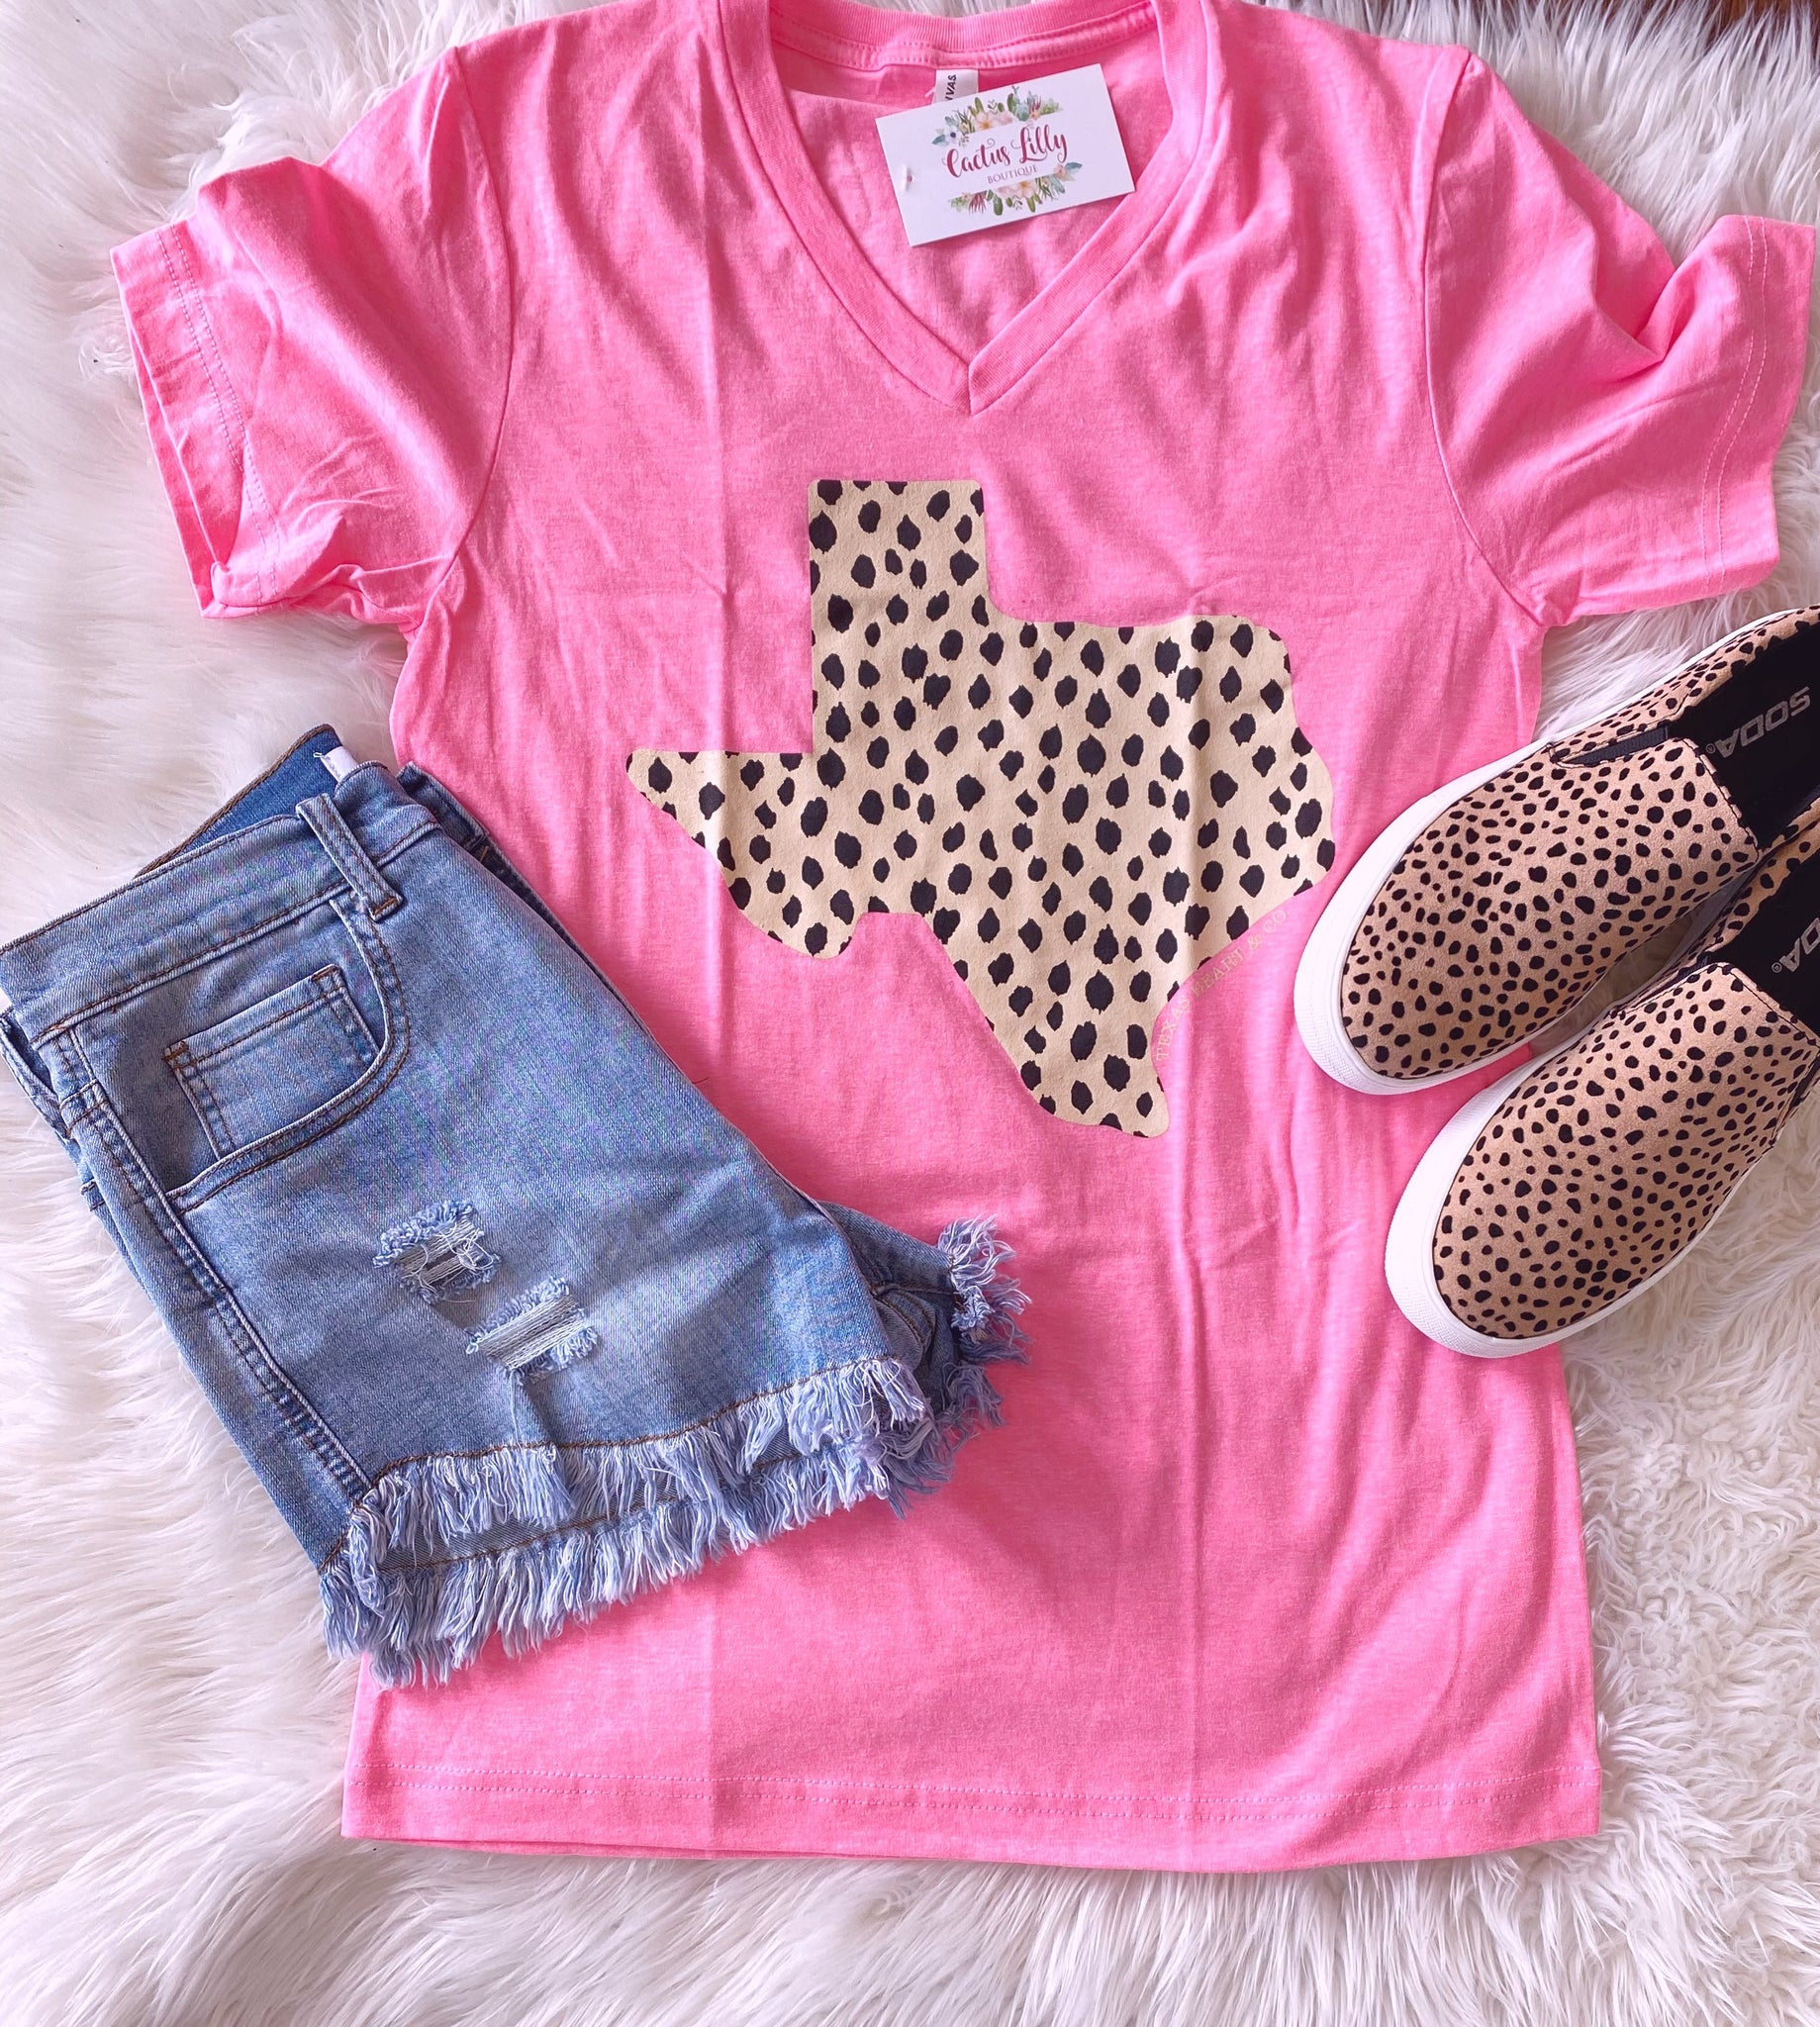 Pink spotted Texas T-shirt